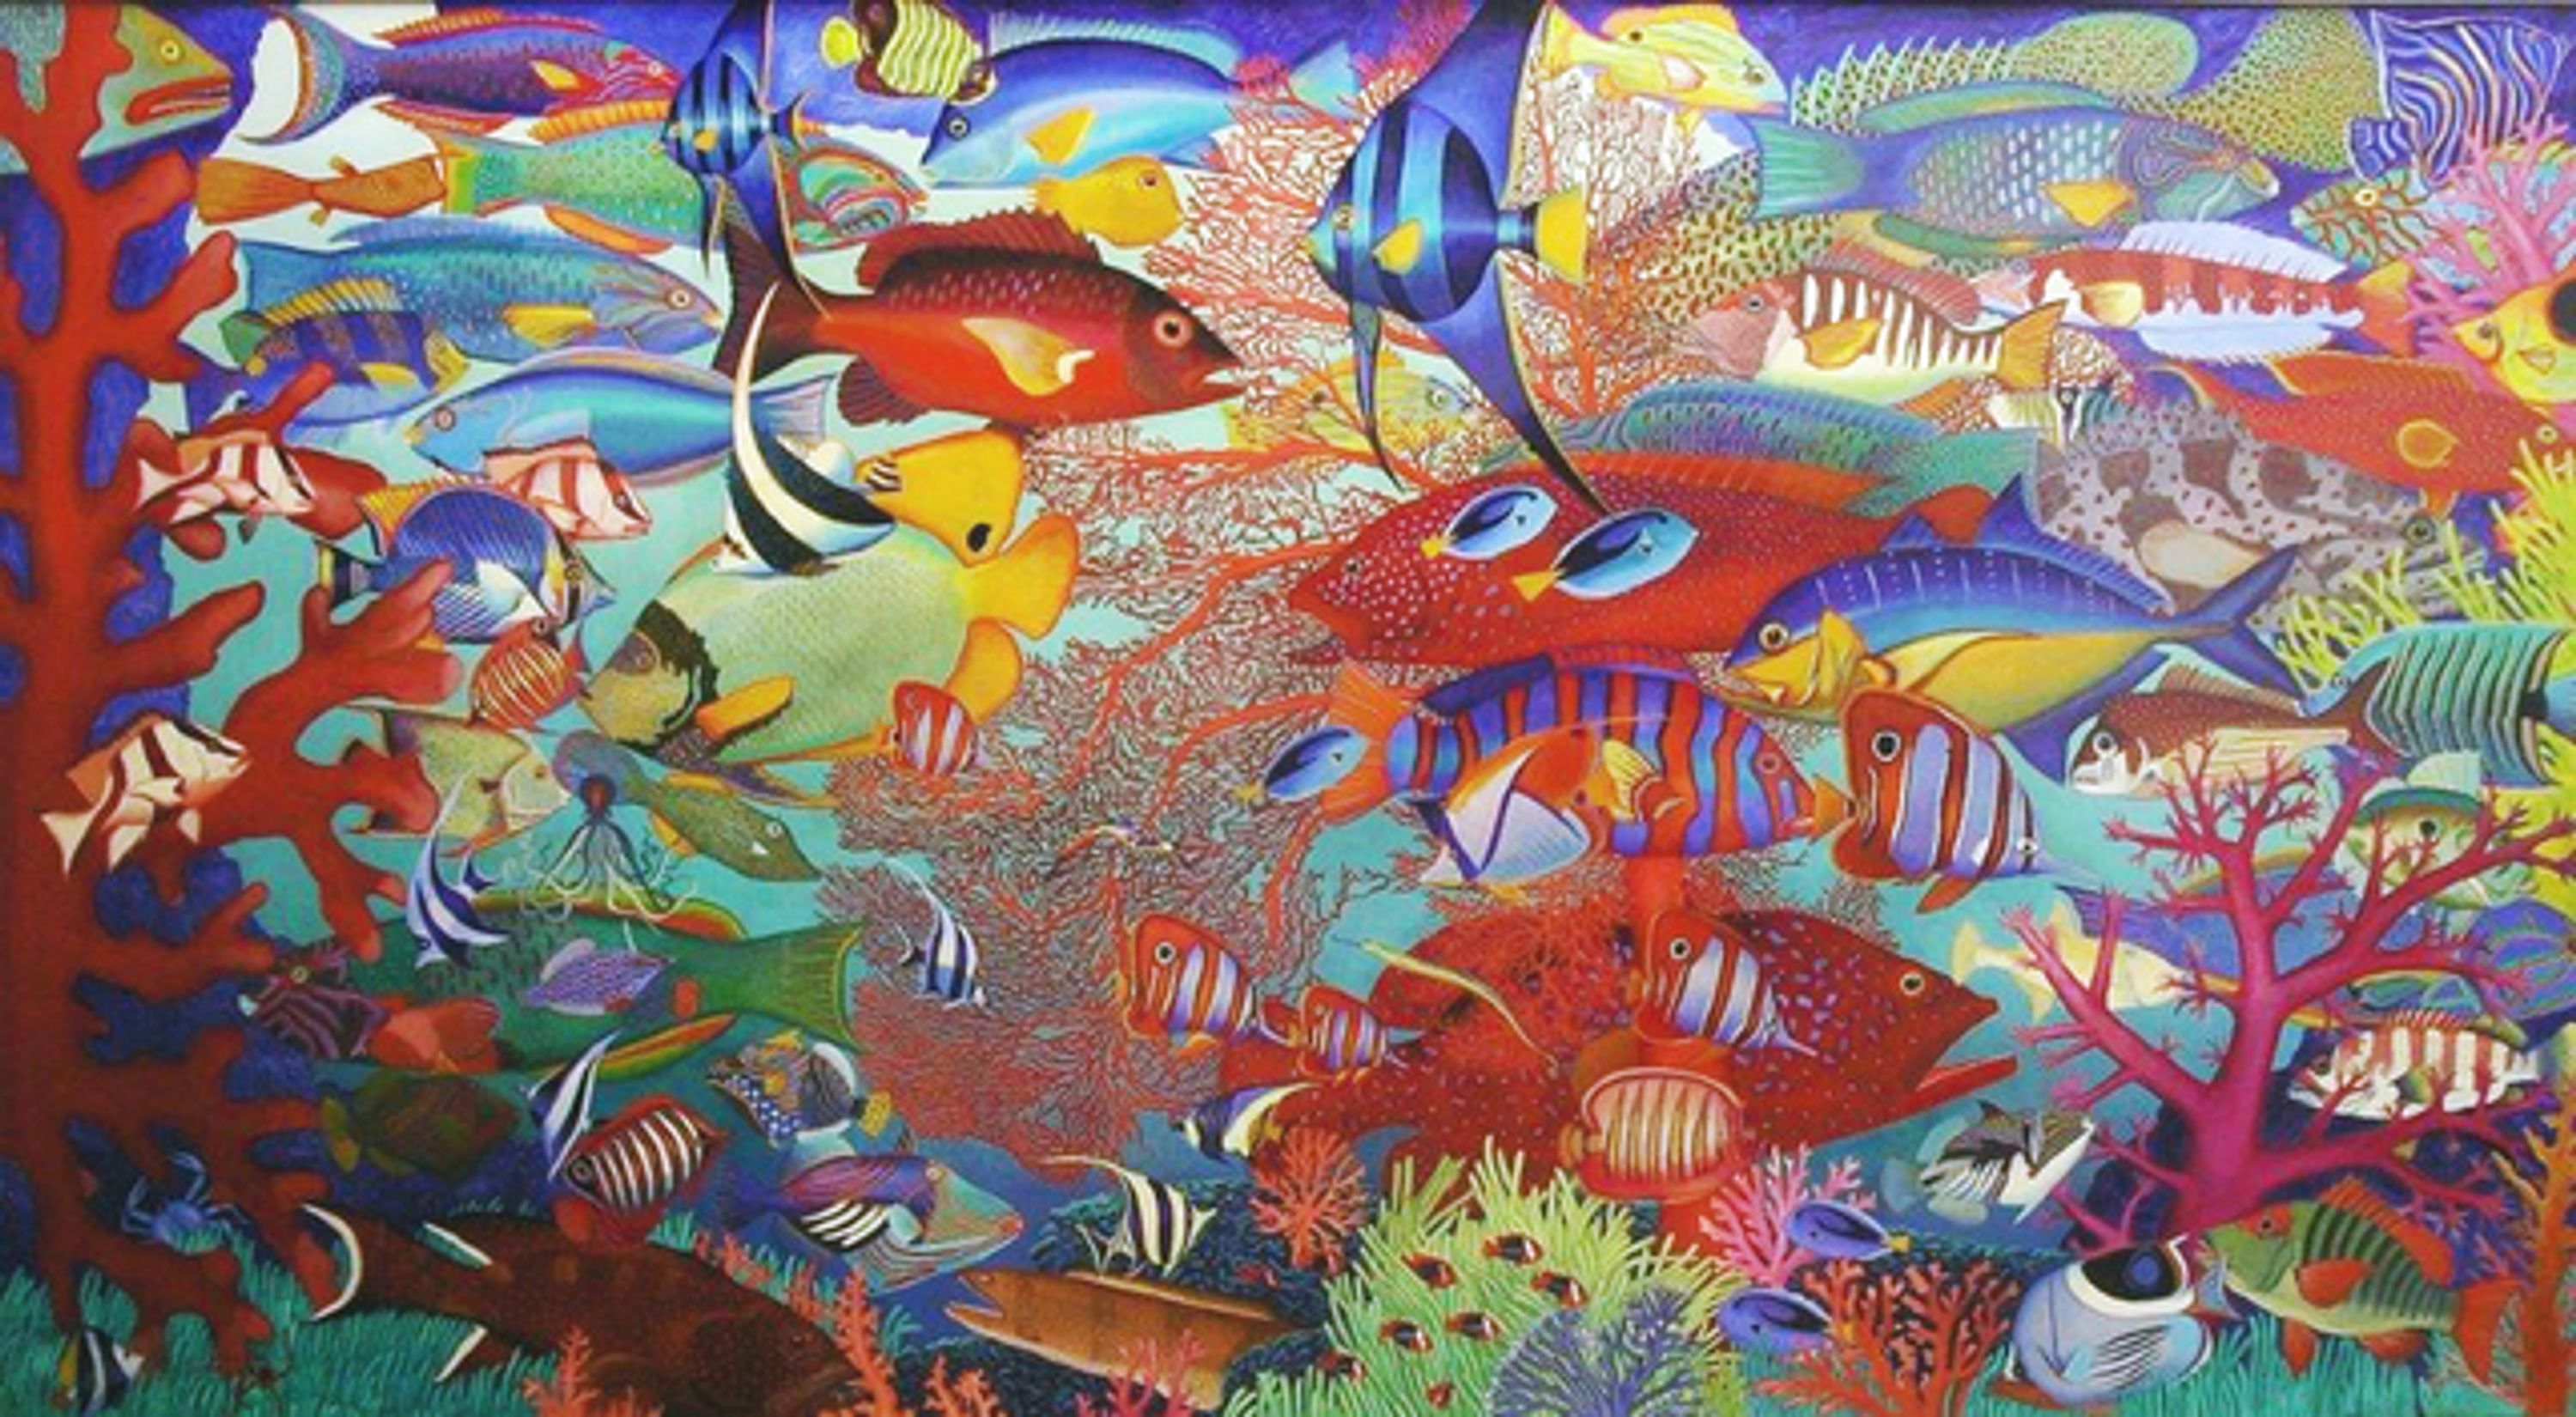 Australia's Great Barrier Reef by Bob Marchant, Anthony Horth Gallery